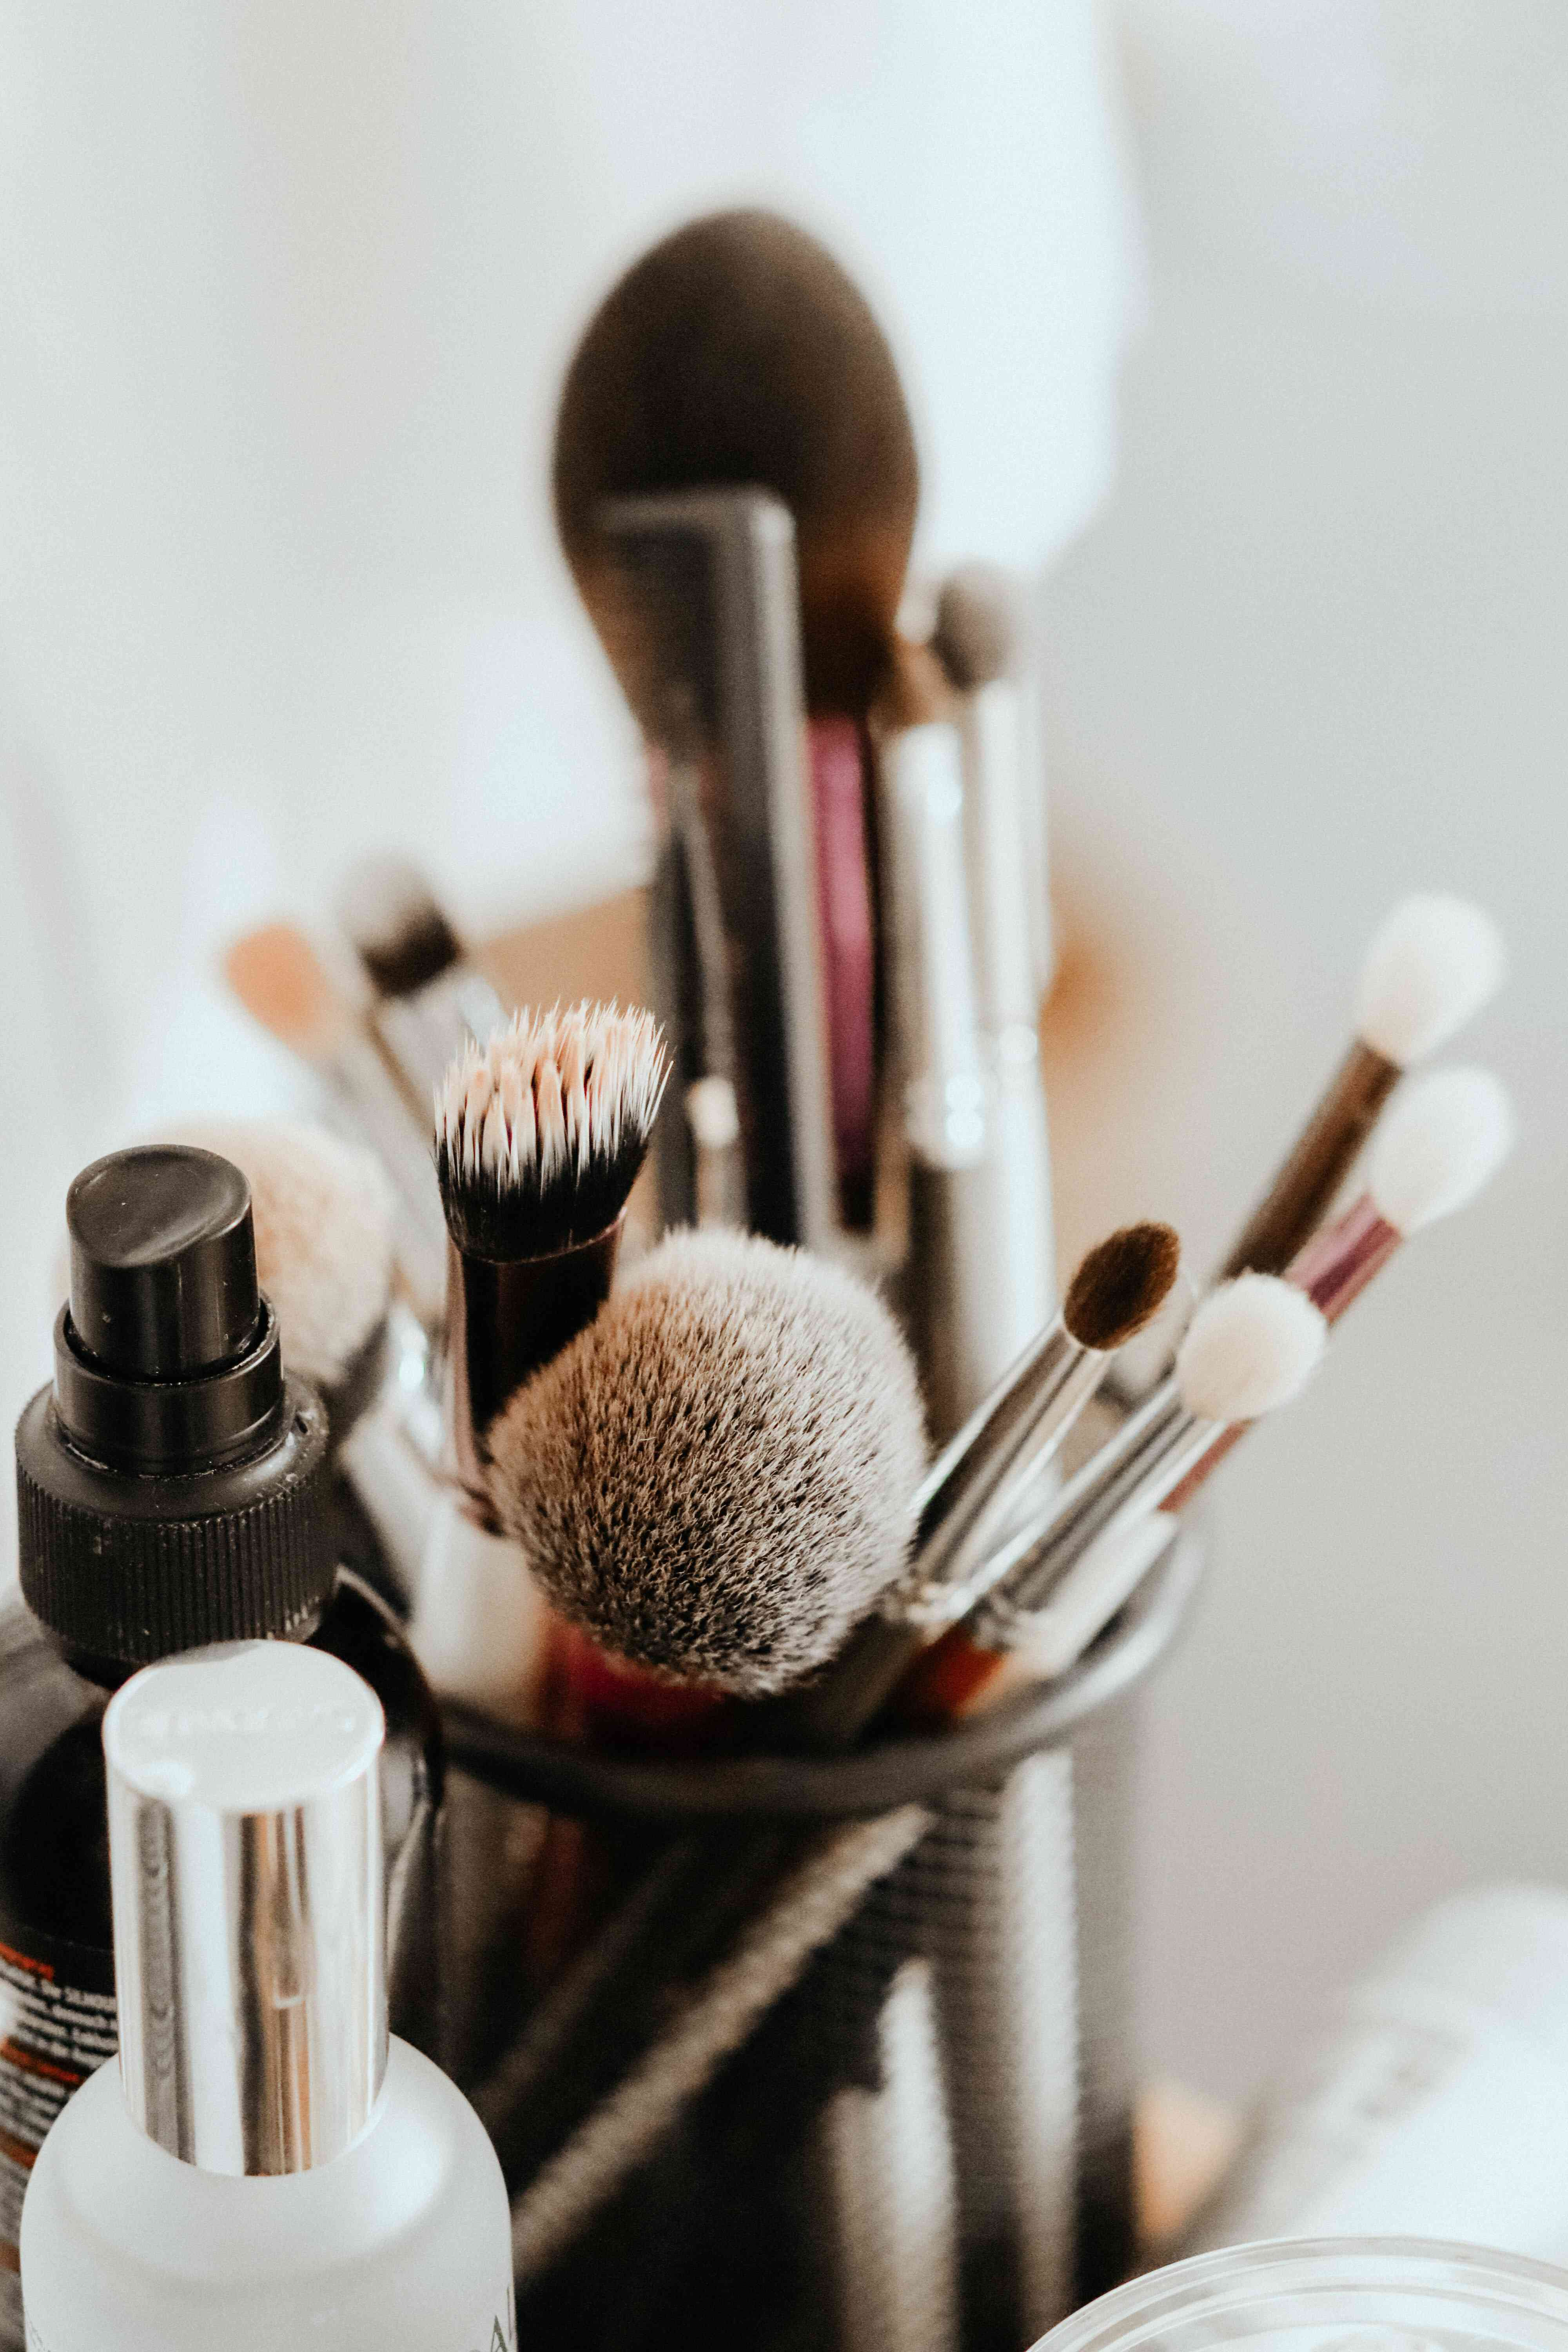 cup of makeup brushes